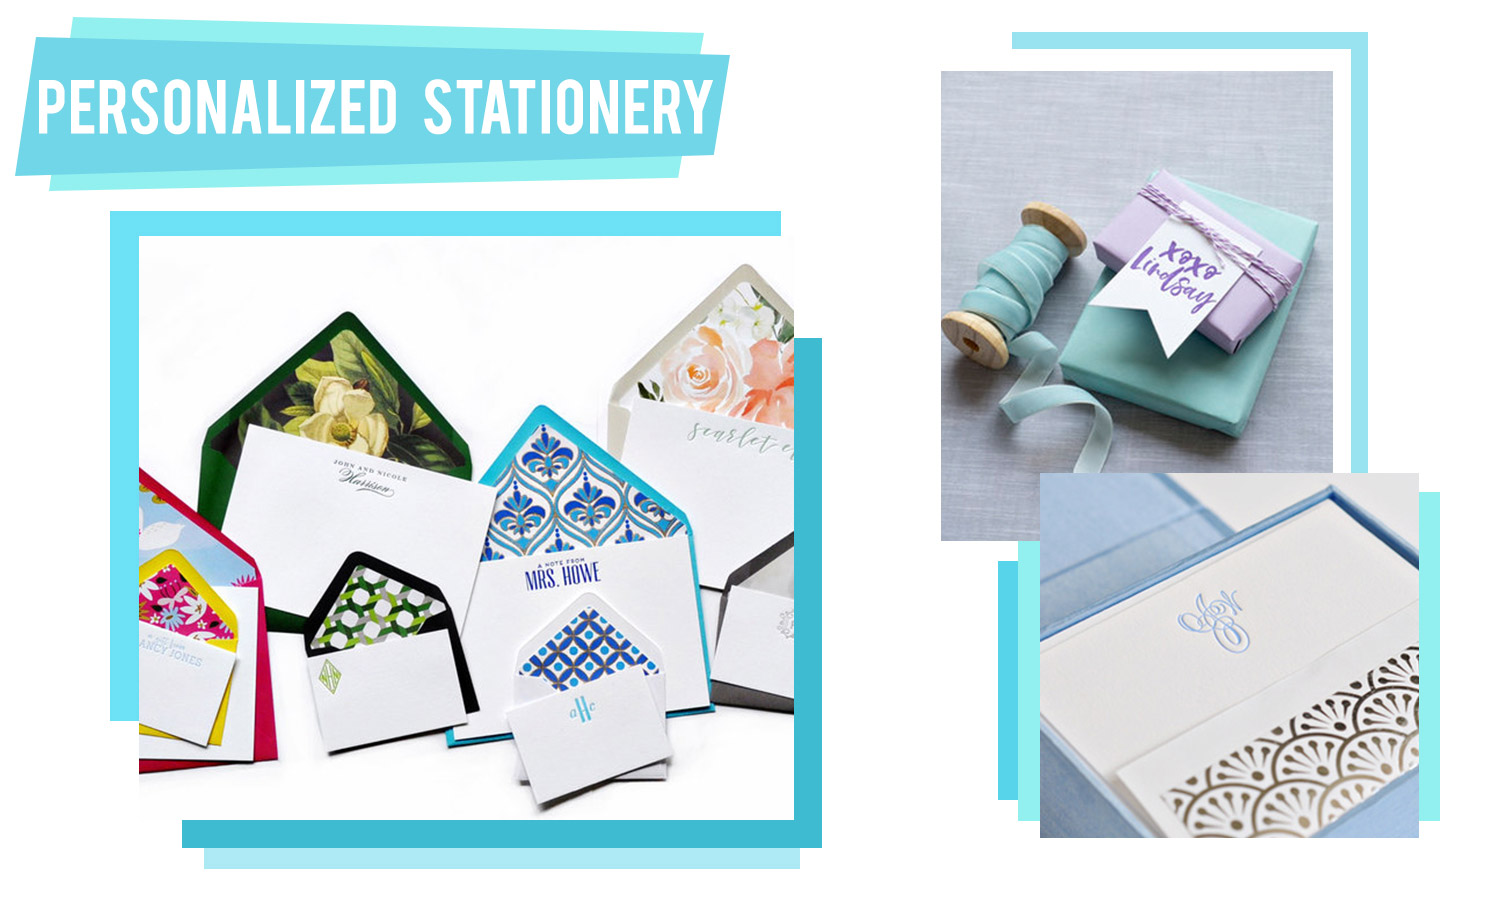 personalized-stationery-banner.jpg